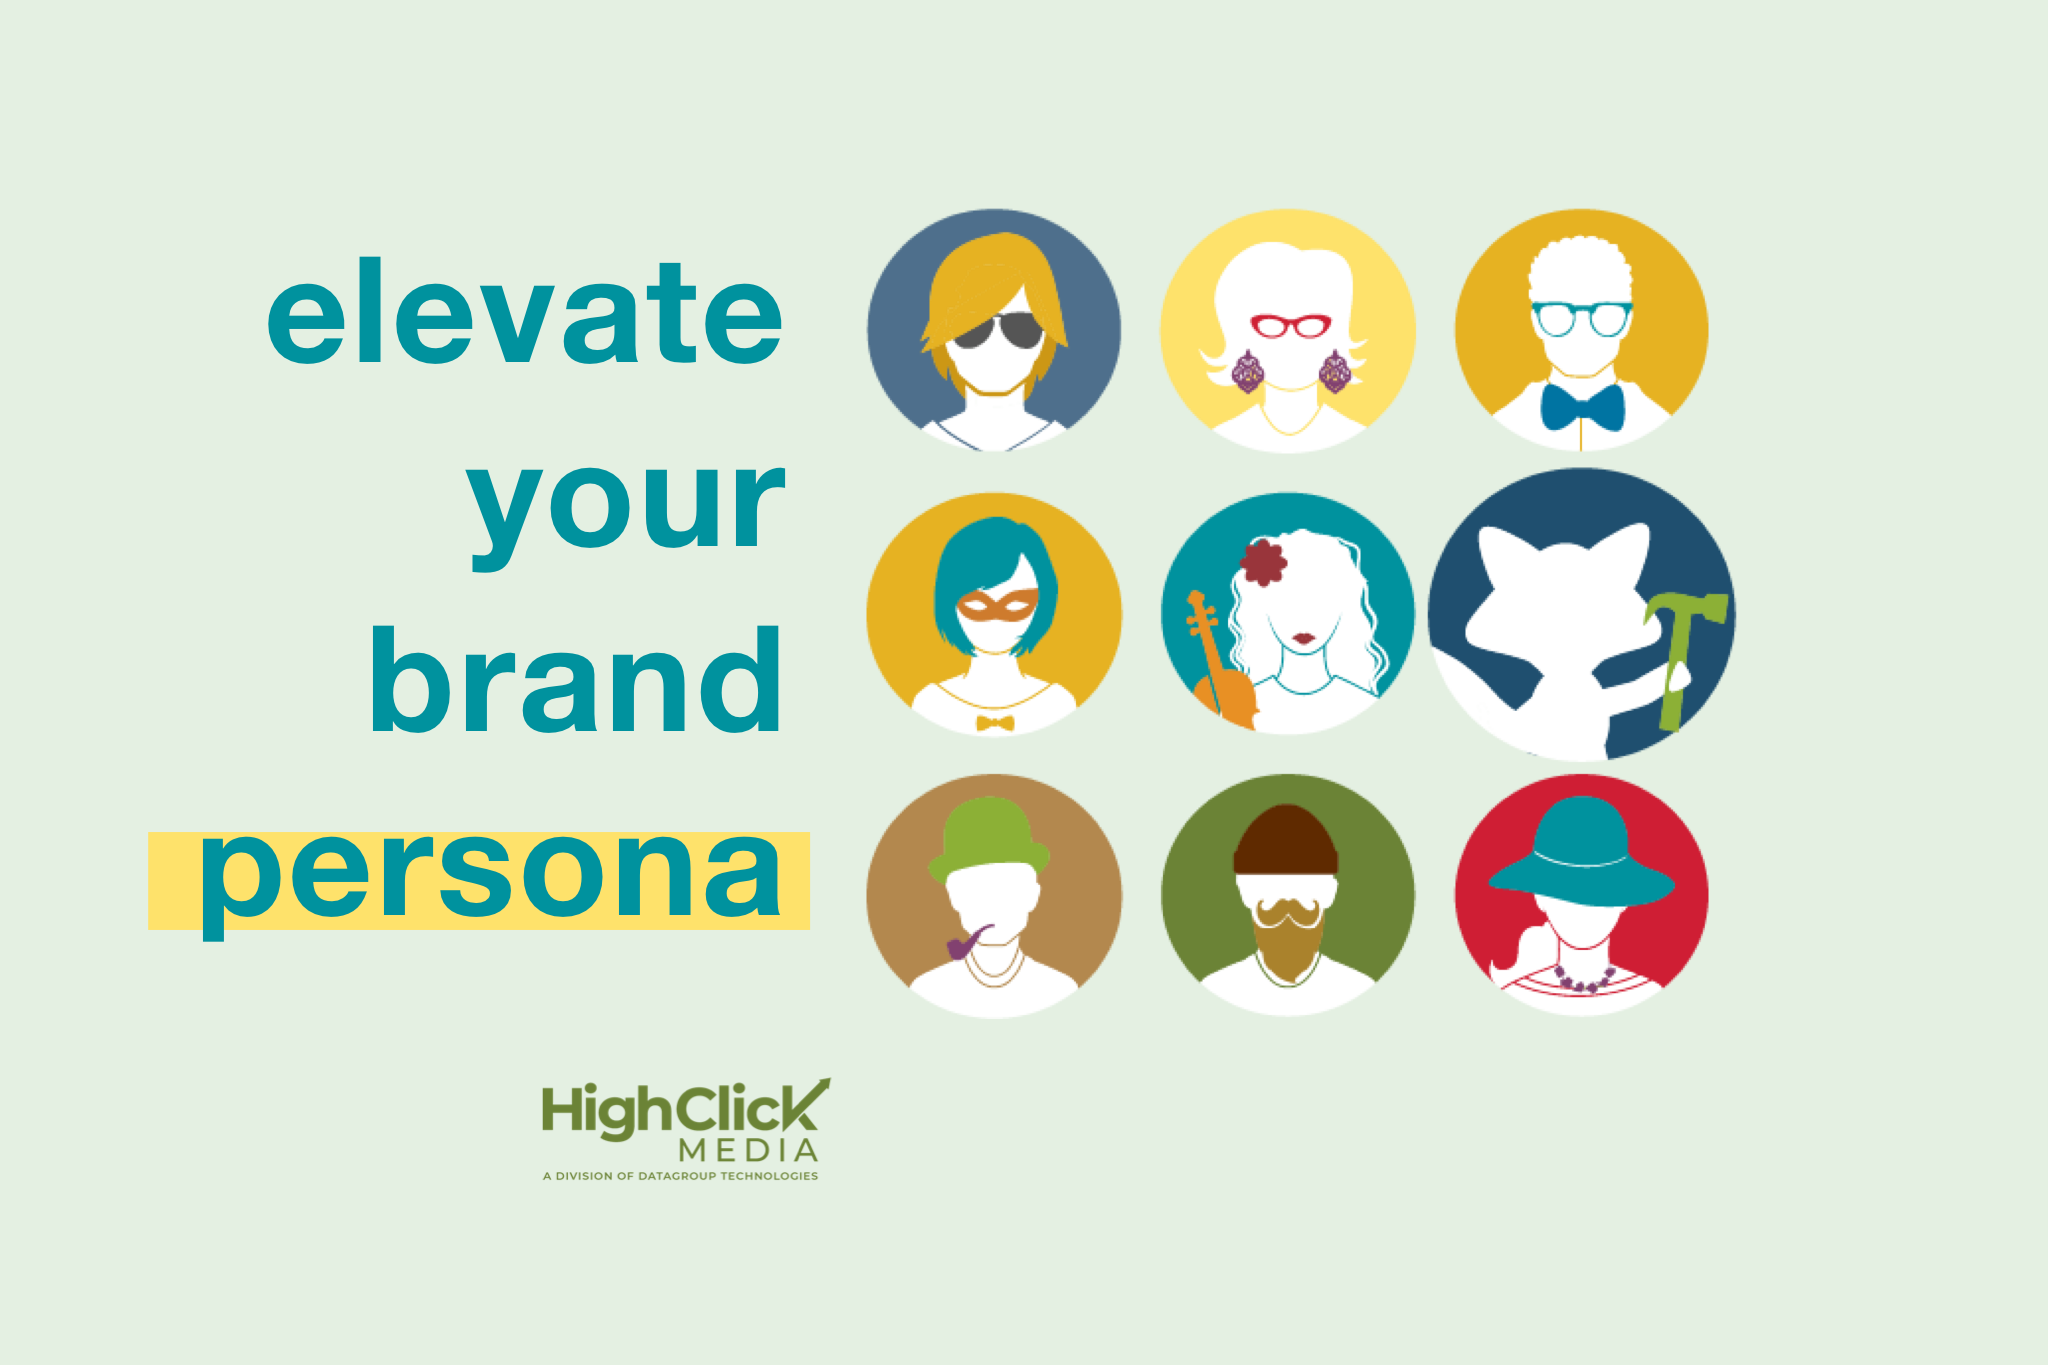 brand_persona_digital_marketing_greenville_nc_agency